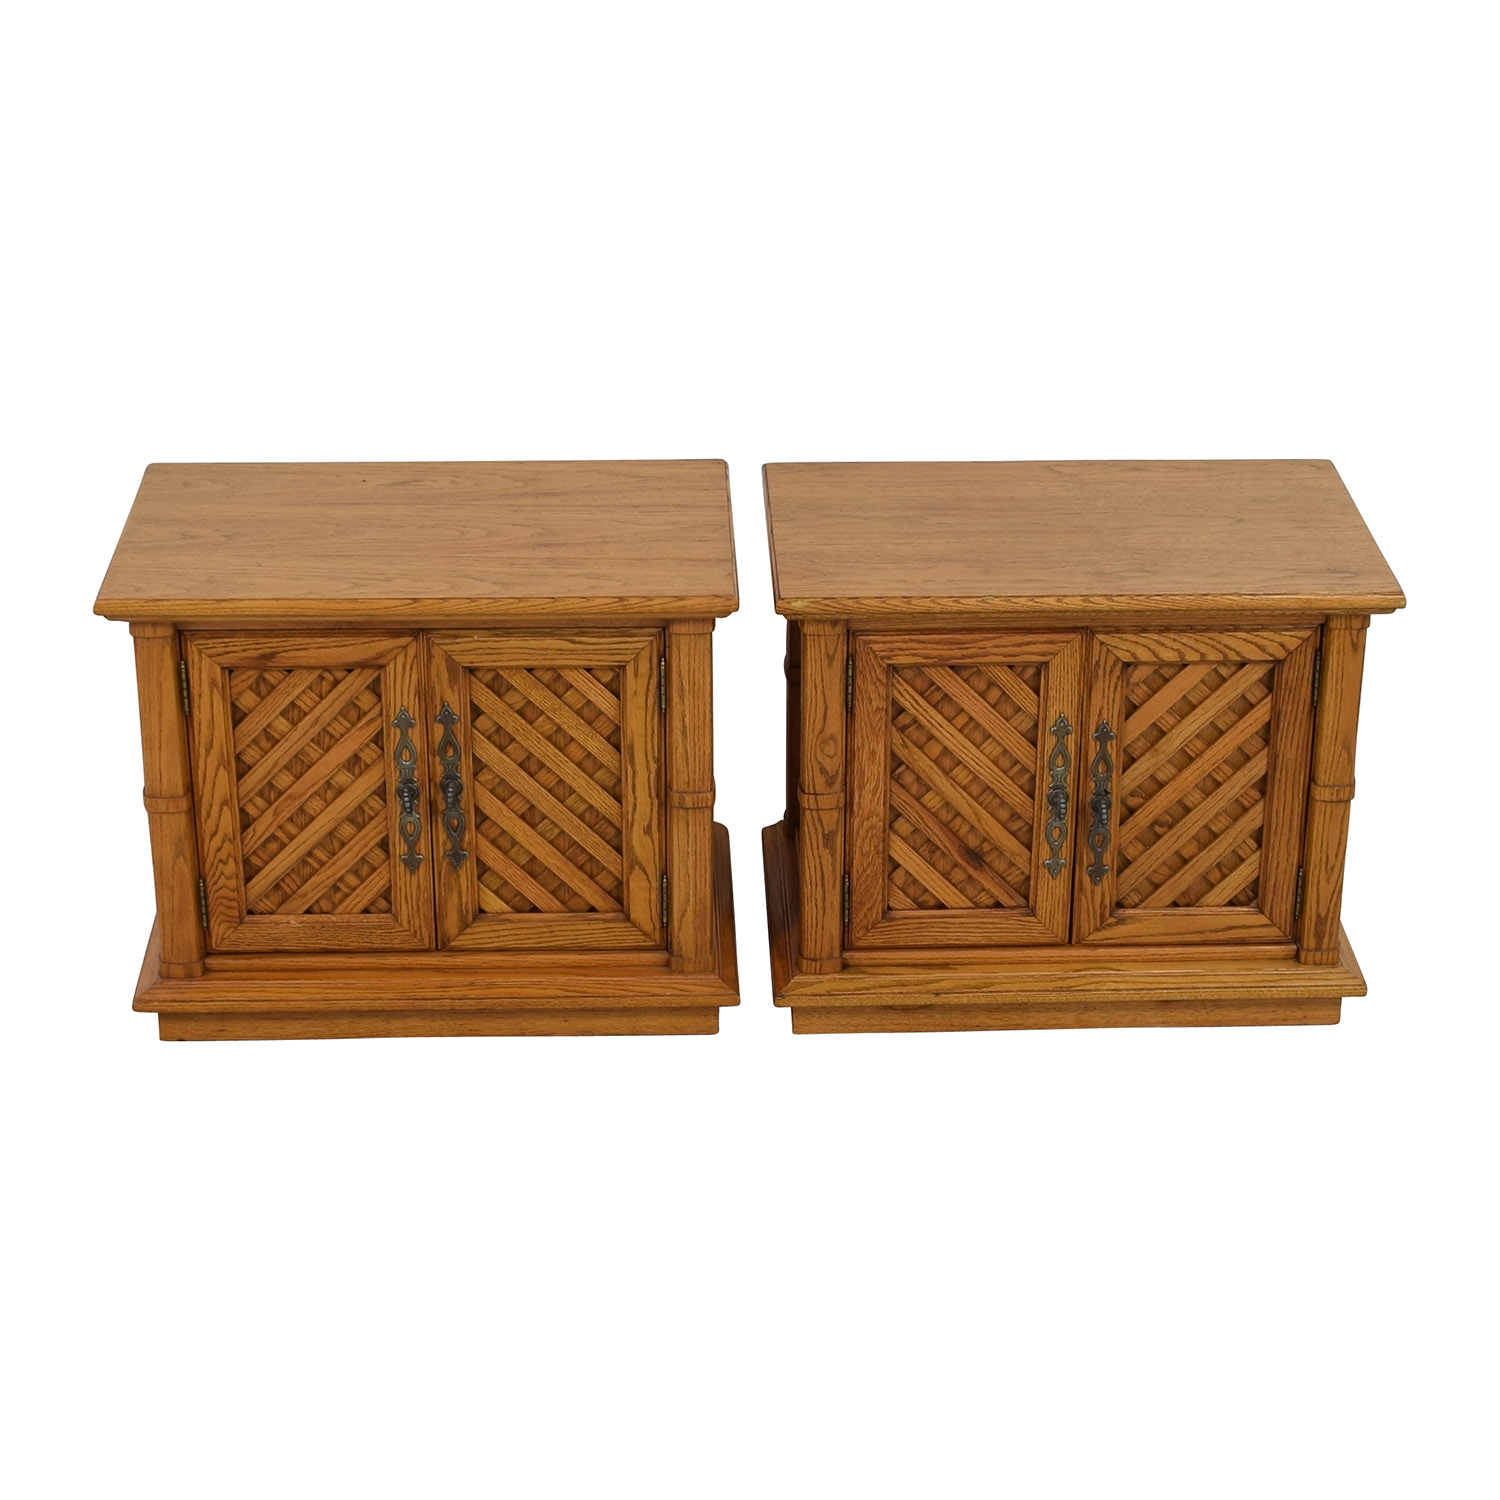 Thomasville Thomasville End Tables End Tables